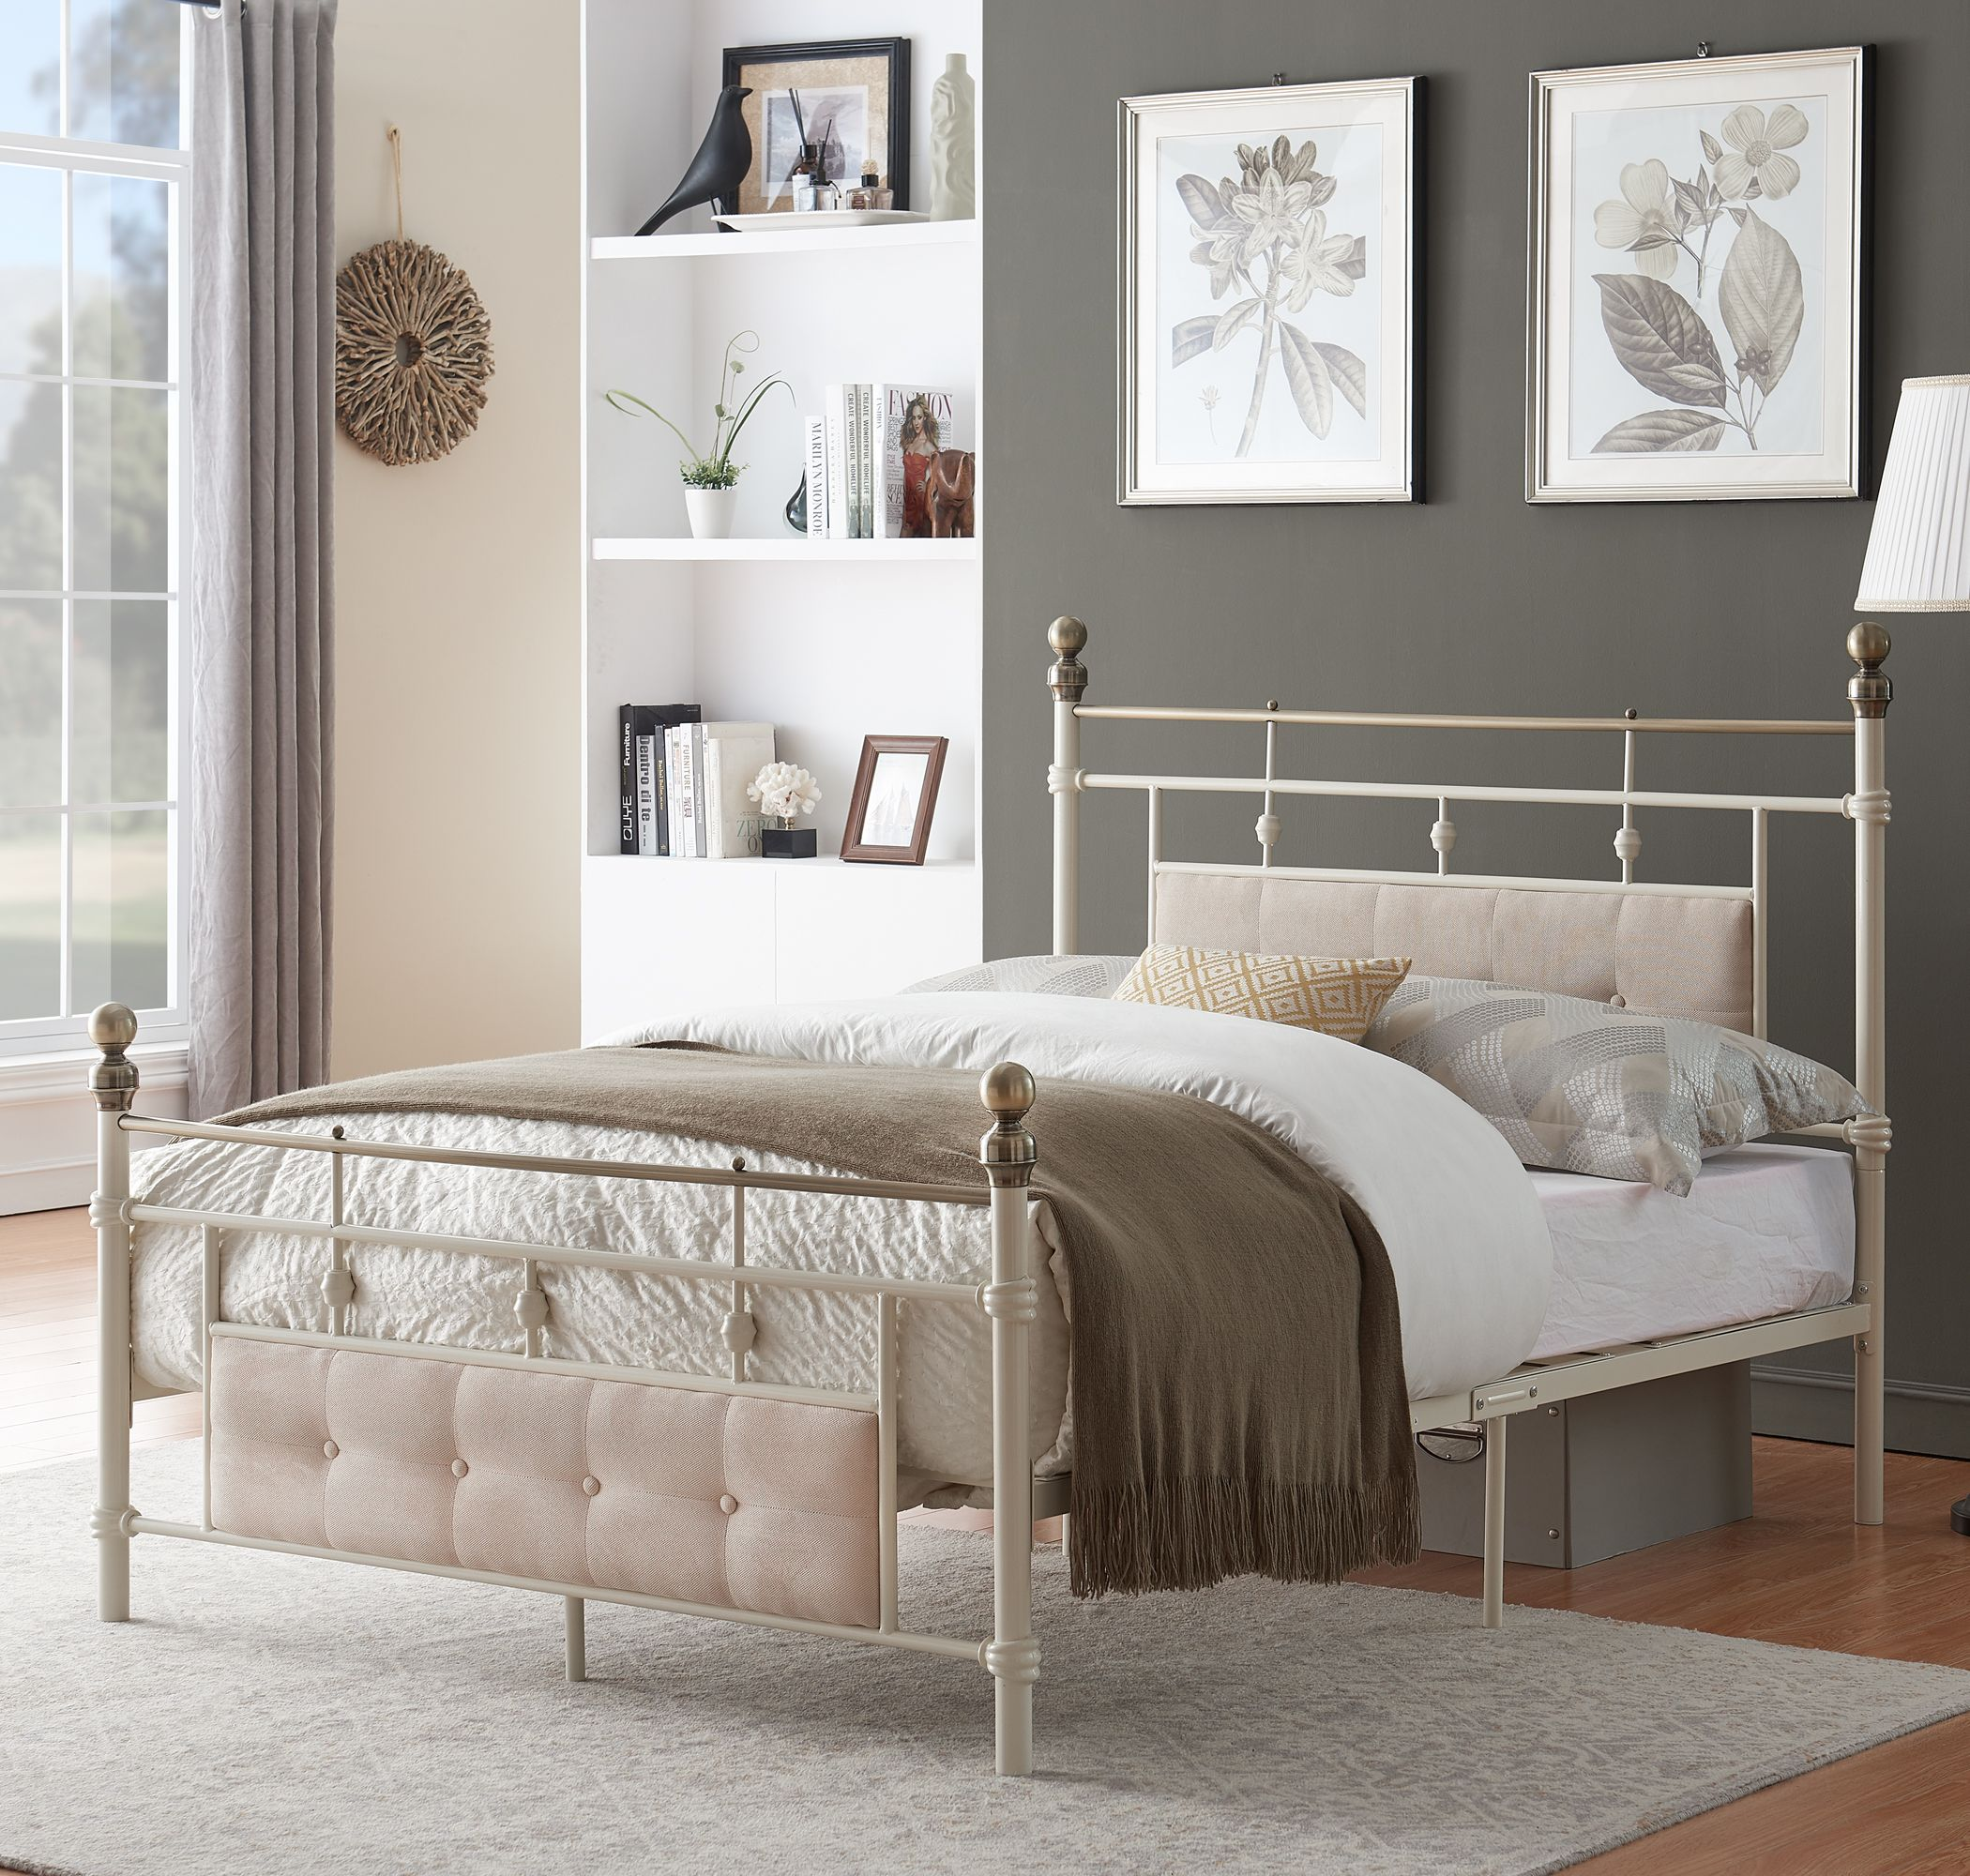 The chic and pleasing smooth finish of this metal bed